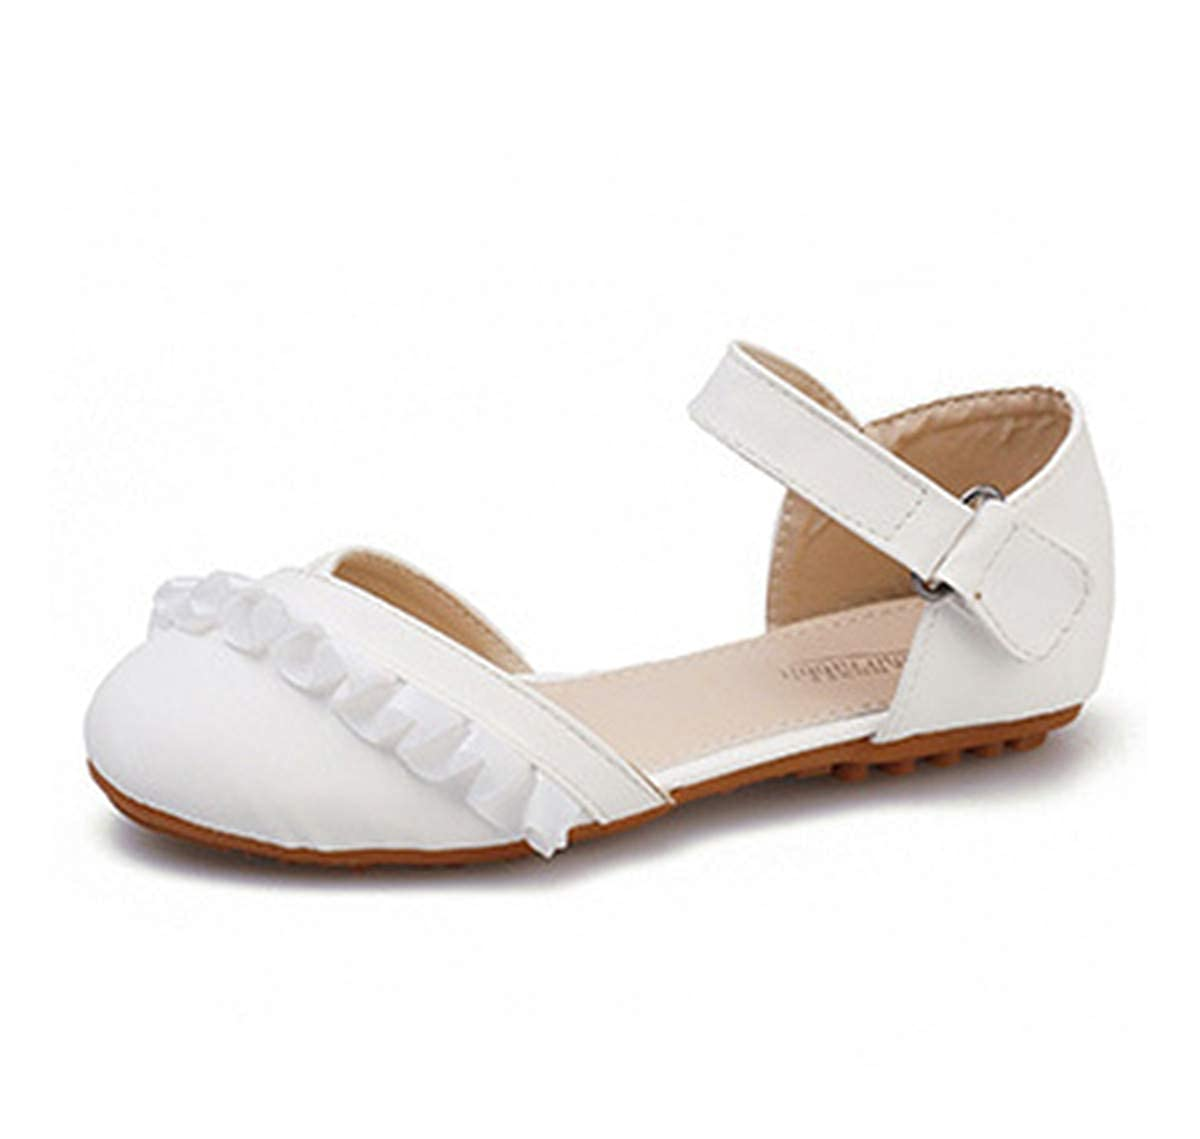 LLBubble Girls Leather Flat Shoes Round Toe Ankle Buckle Strap Ballet Kids Shoes Casual Mary Jane Princess Dress Pumps